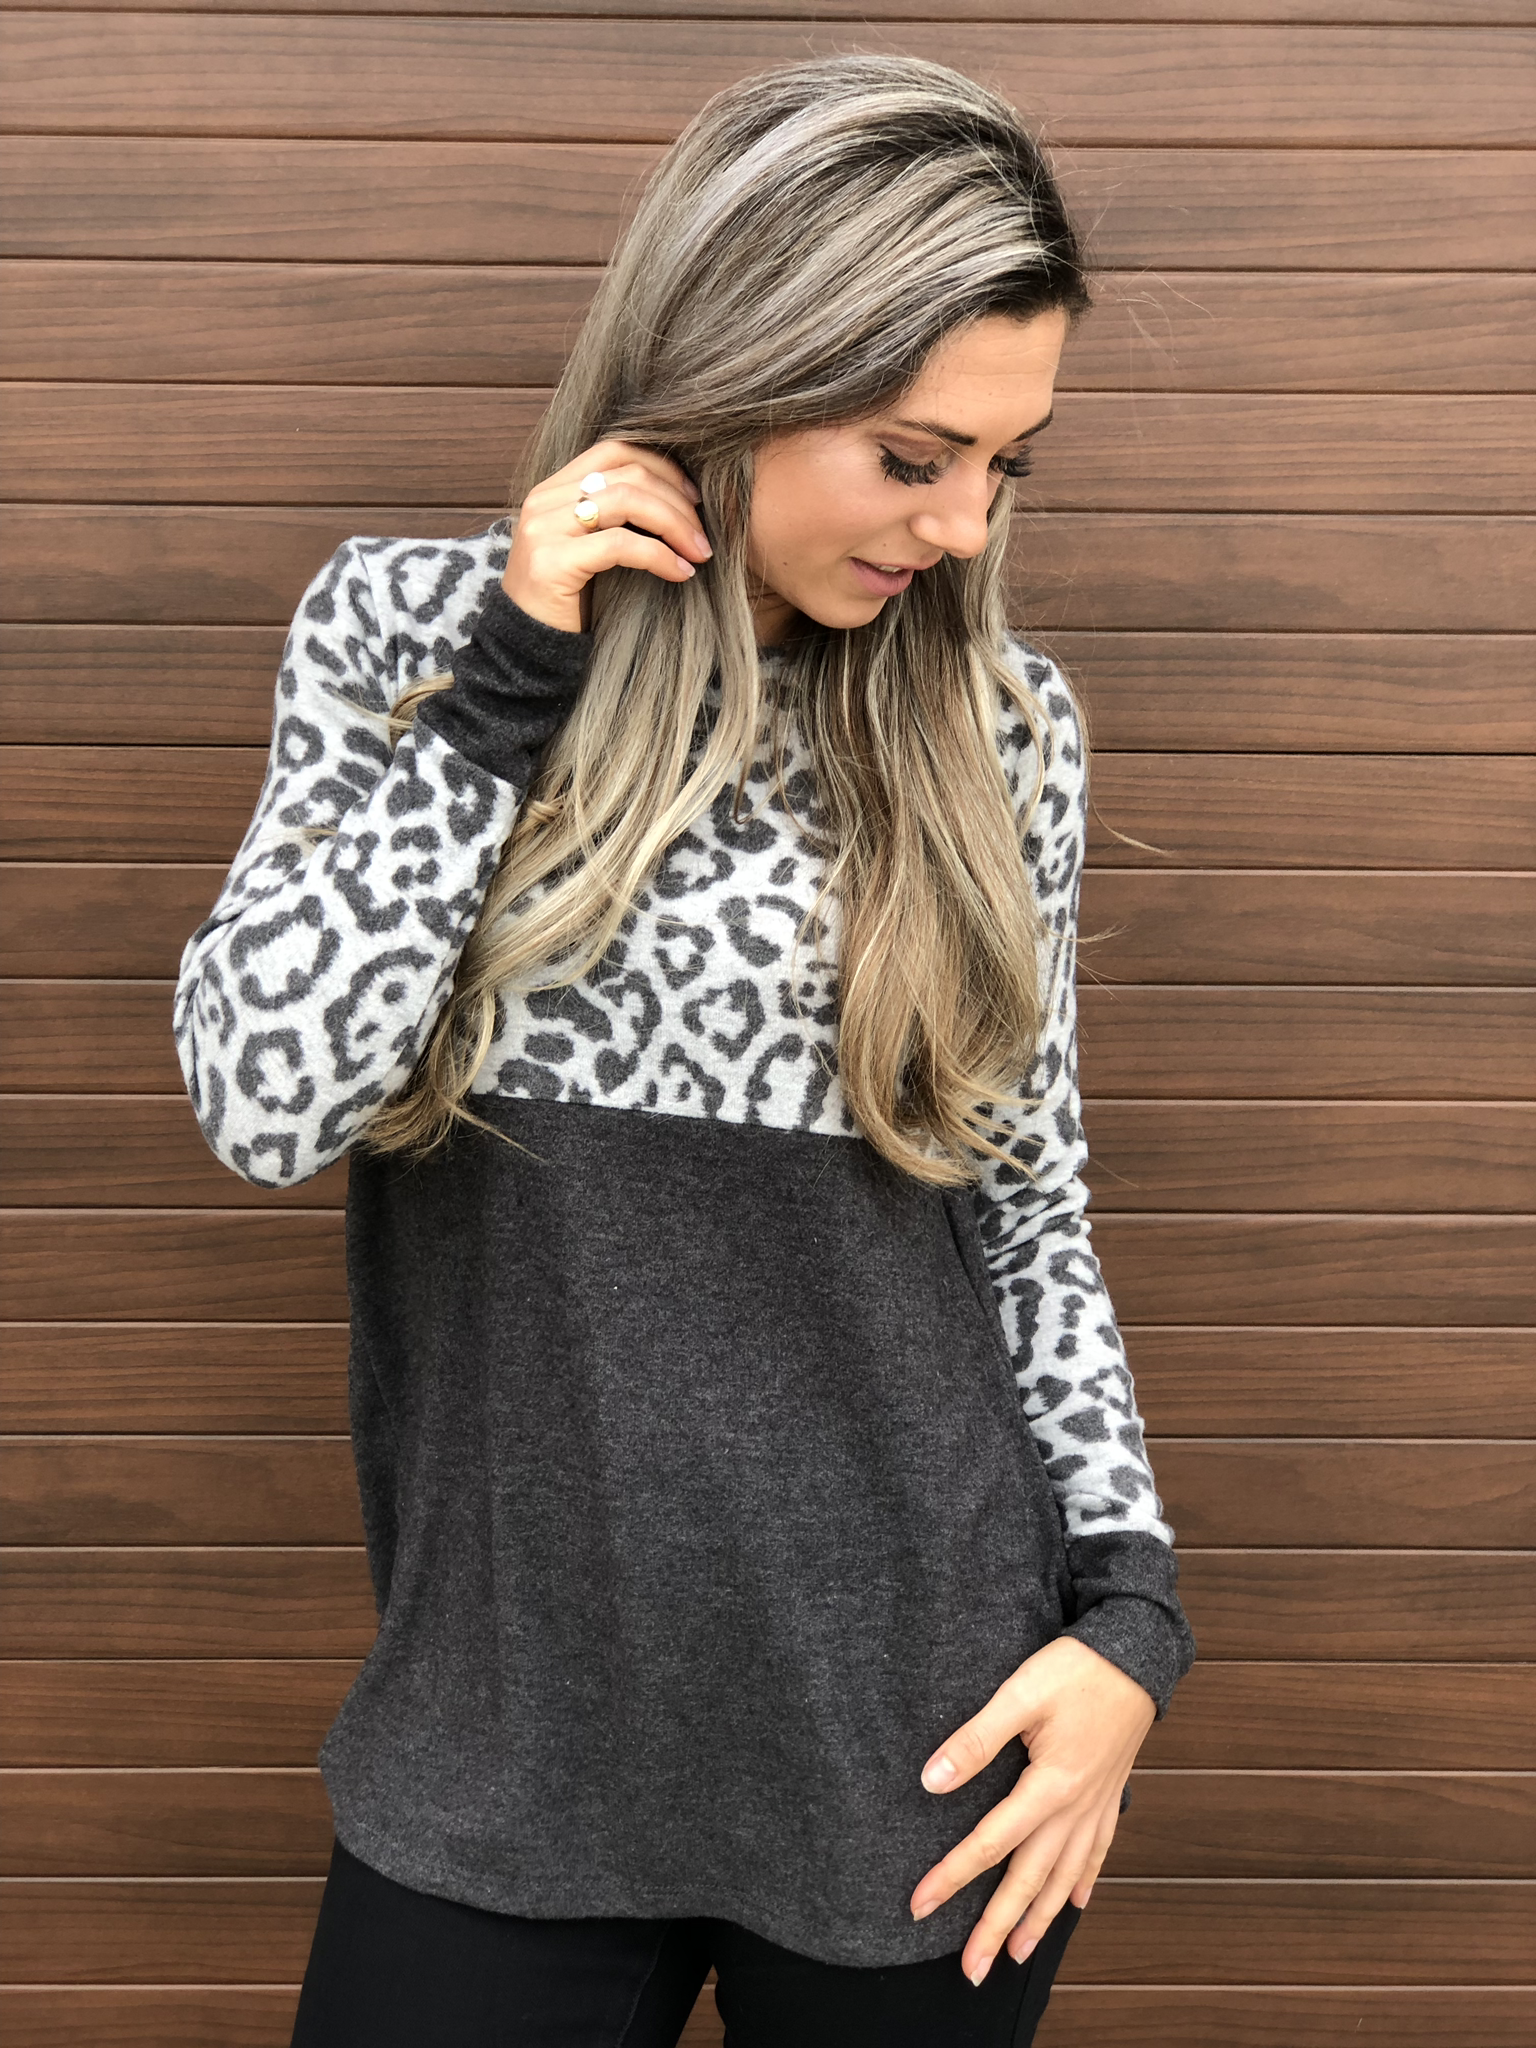 Grey Color Block Cheetah Print Sweater 83598